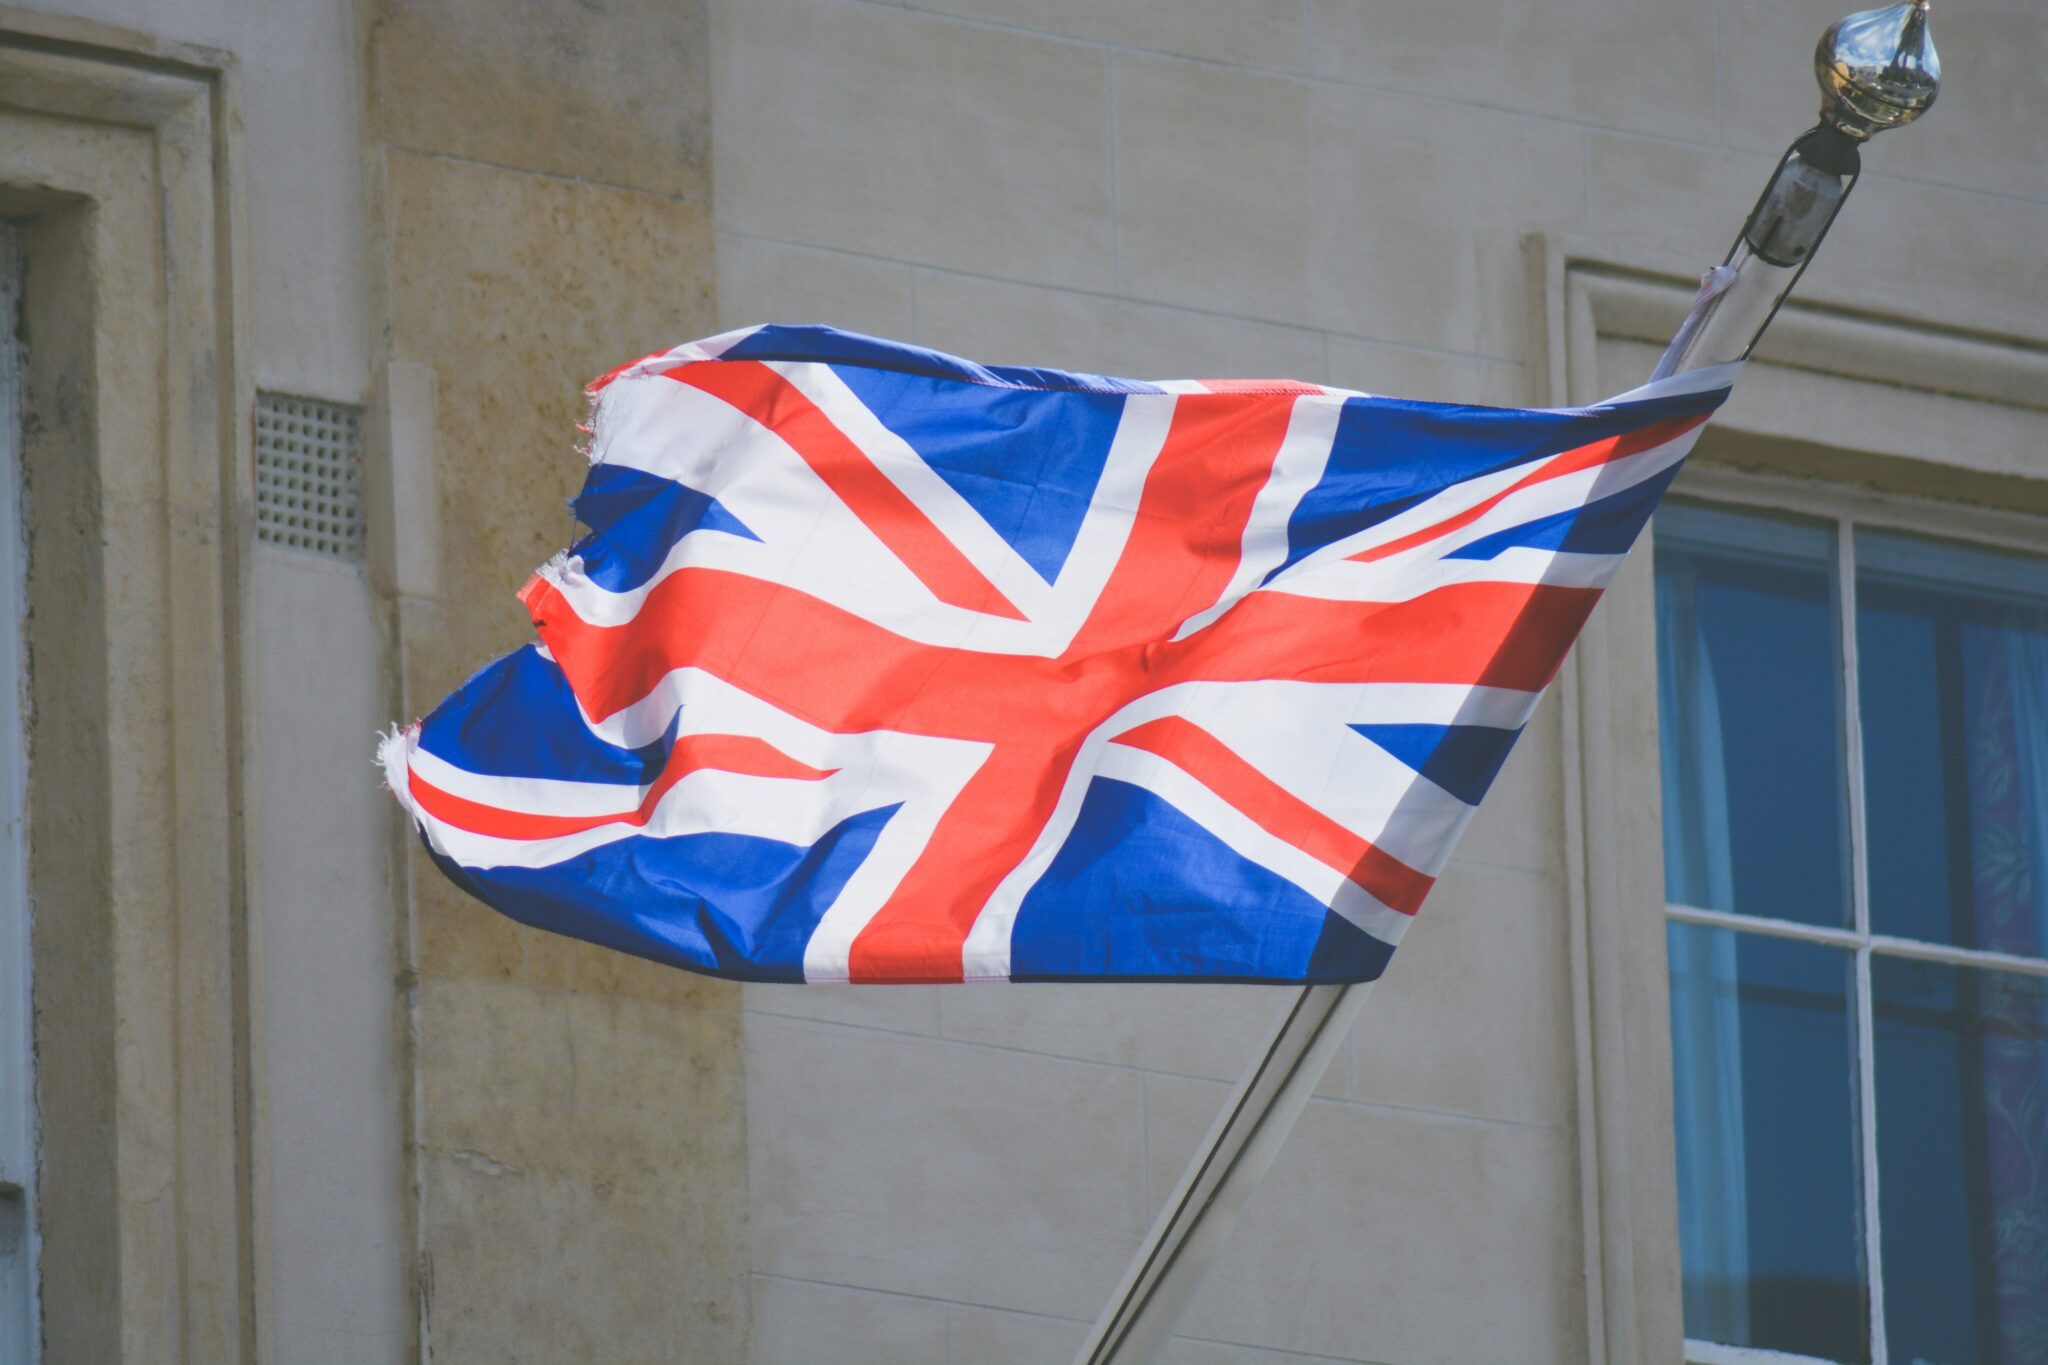 10 of the UK's fastest growing startups | EU-Startups